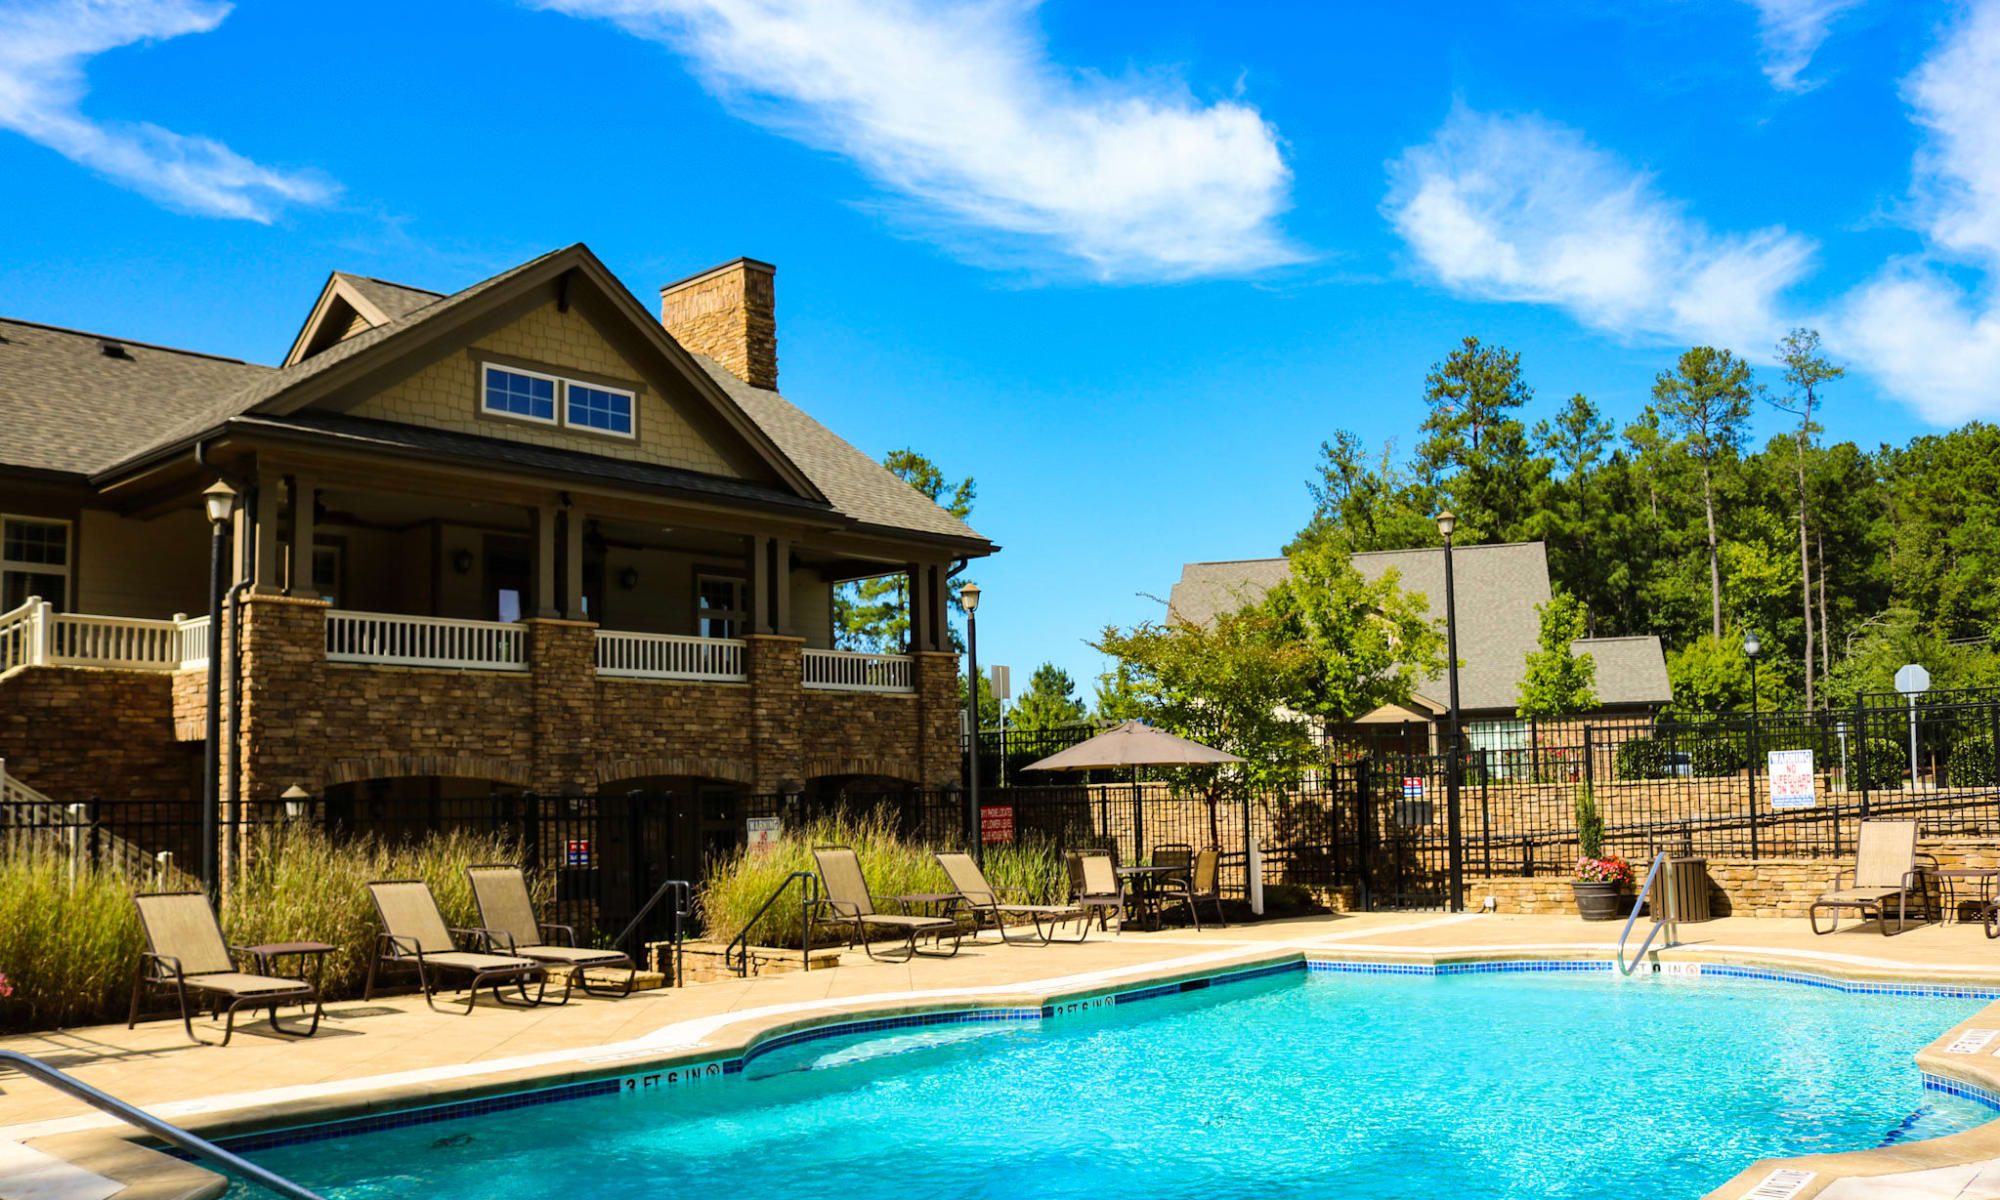 Take a look at our apartments at Townhomes at Chapel Watch Village